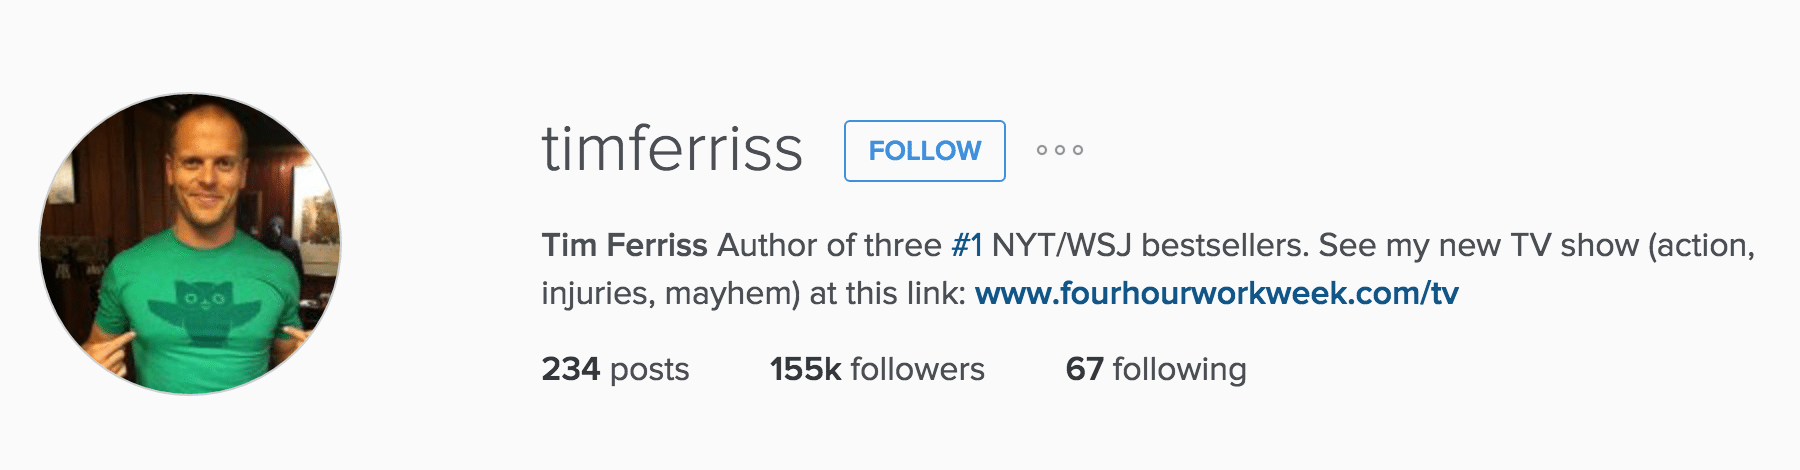 tim ferriss instagram